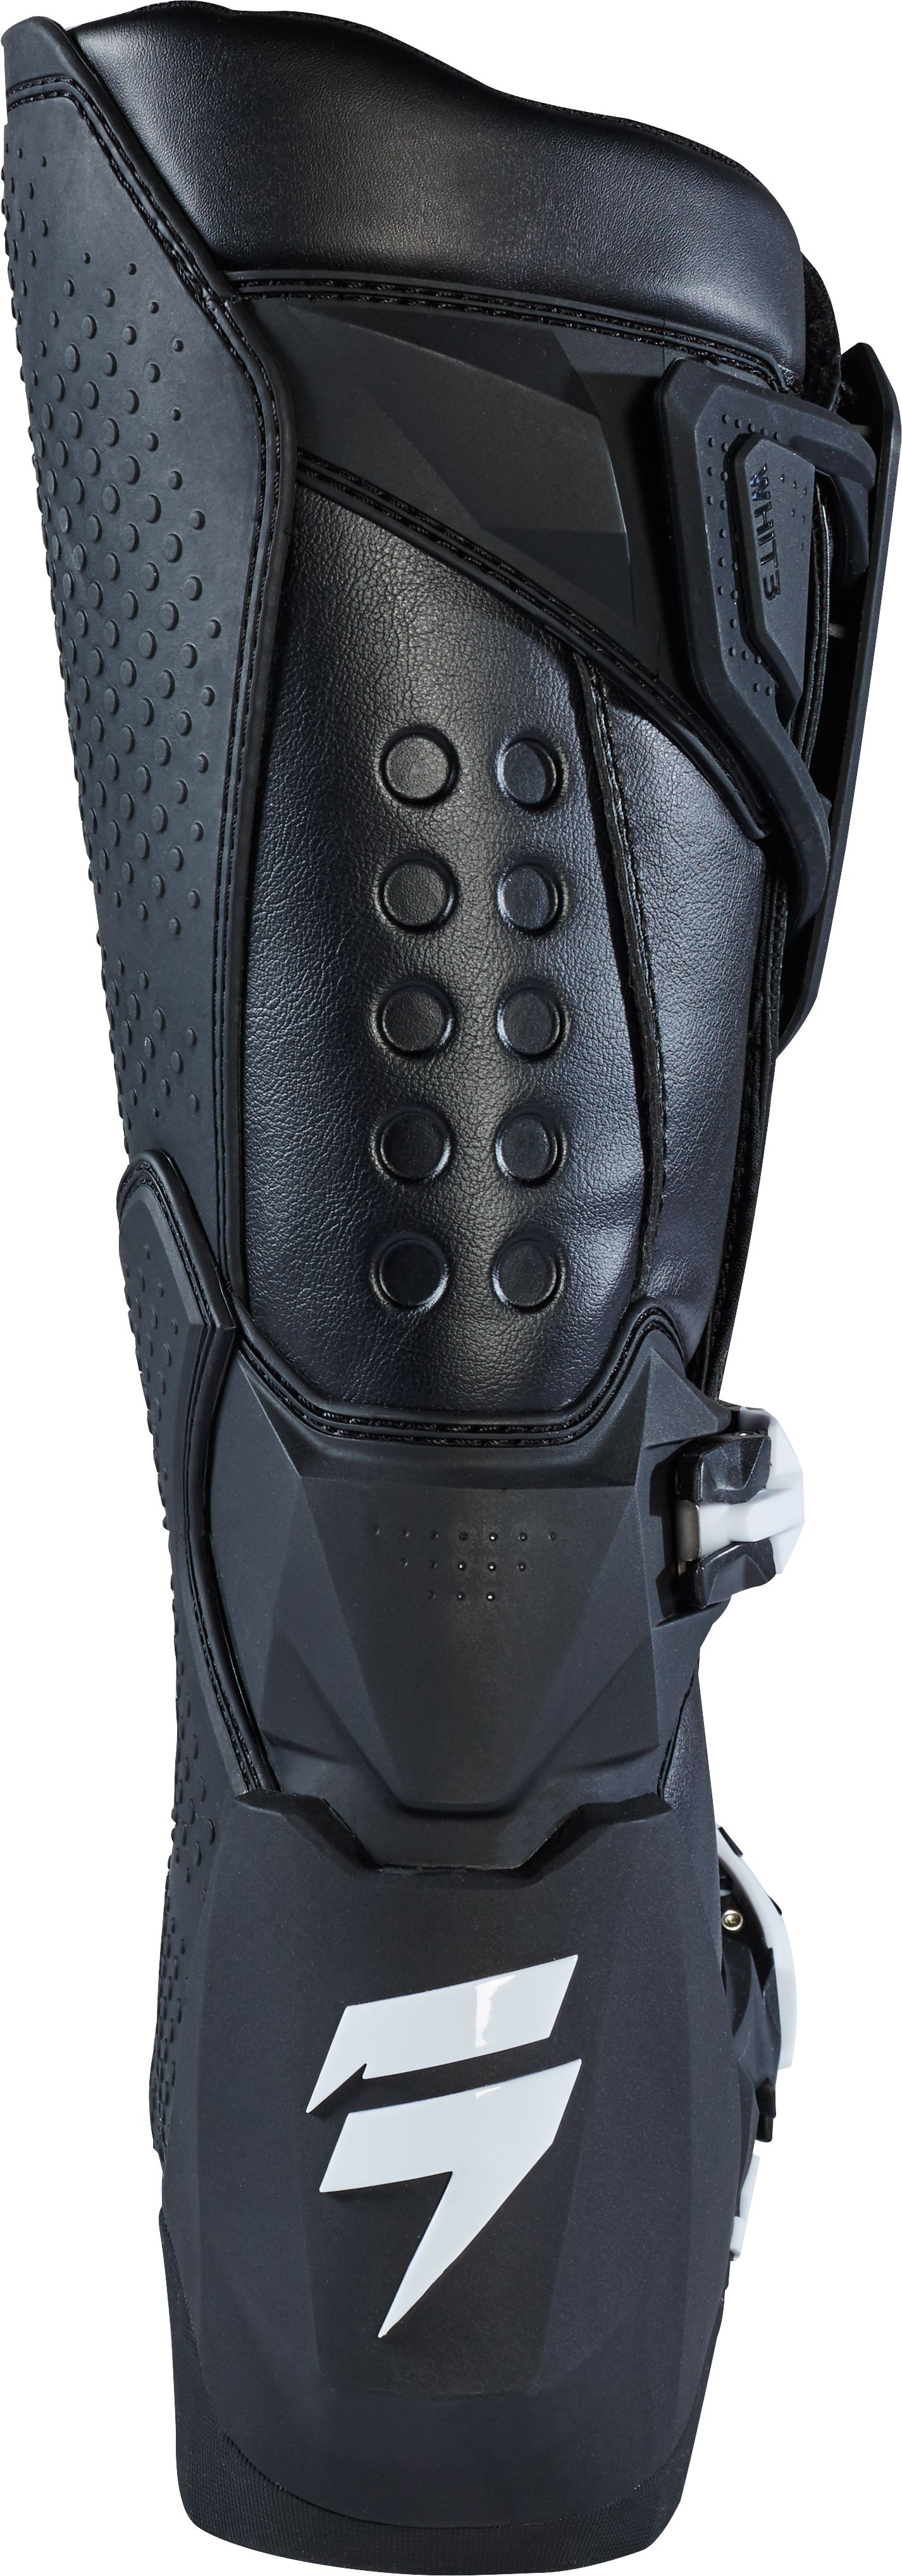 WHIT3 LABEL BOOT [BLK] [0]